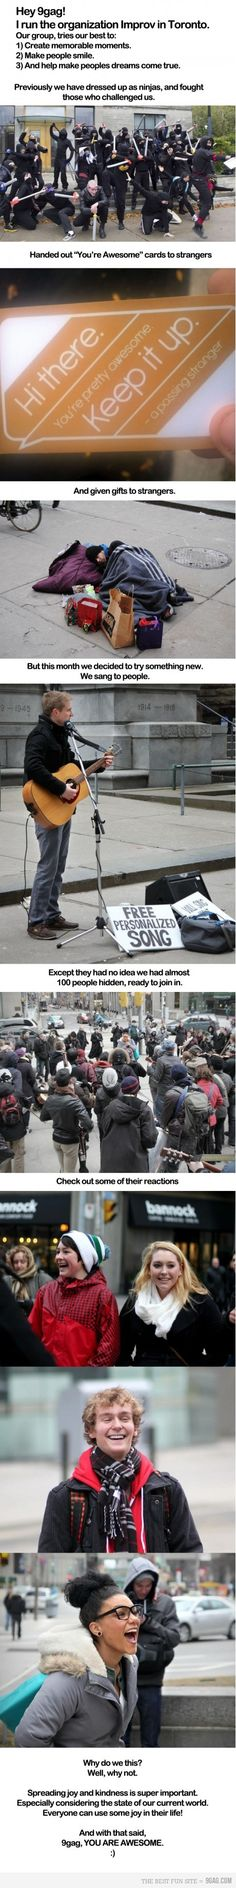 these guys are awesome! i totally want to do this:)